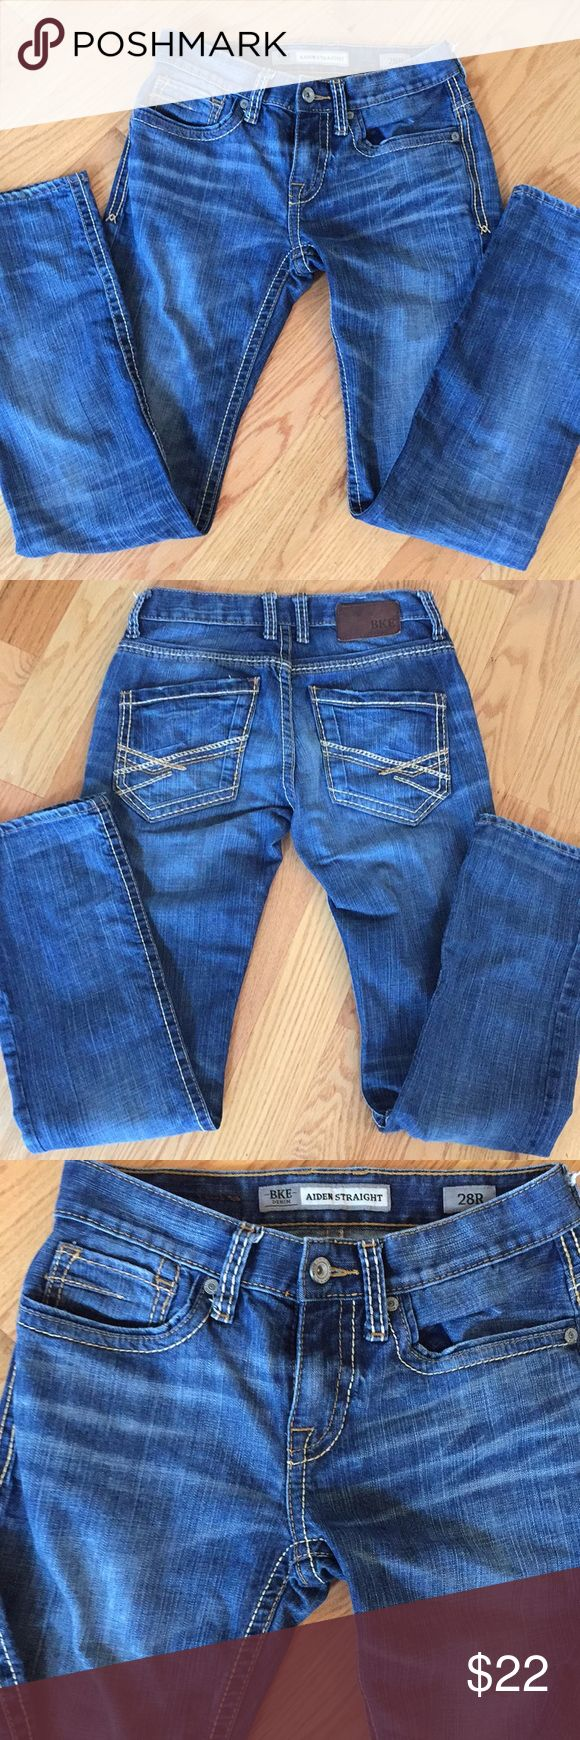 BKE Aiden straight cut jeans BKE Straight cut jeans. Size 28 regular. Has cute stitching on the back pockets. Very slenderizing. No holes or stains. Please ask any questions. BKE Pants Straight Leg